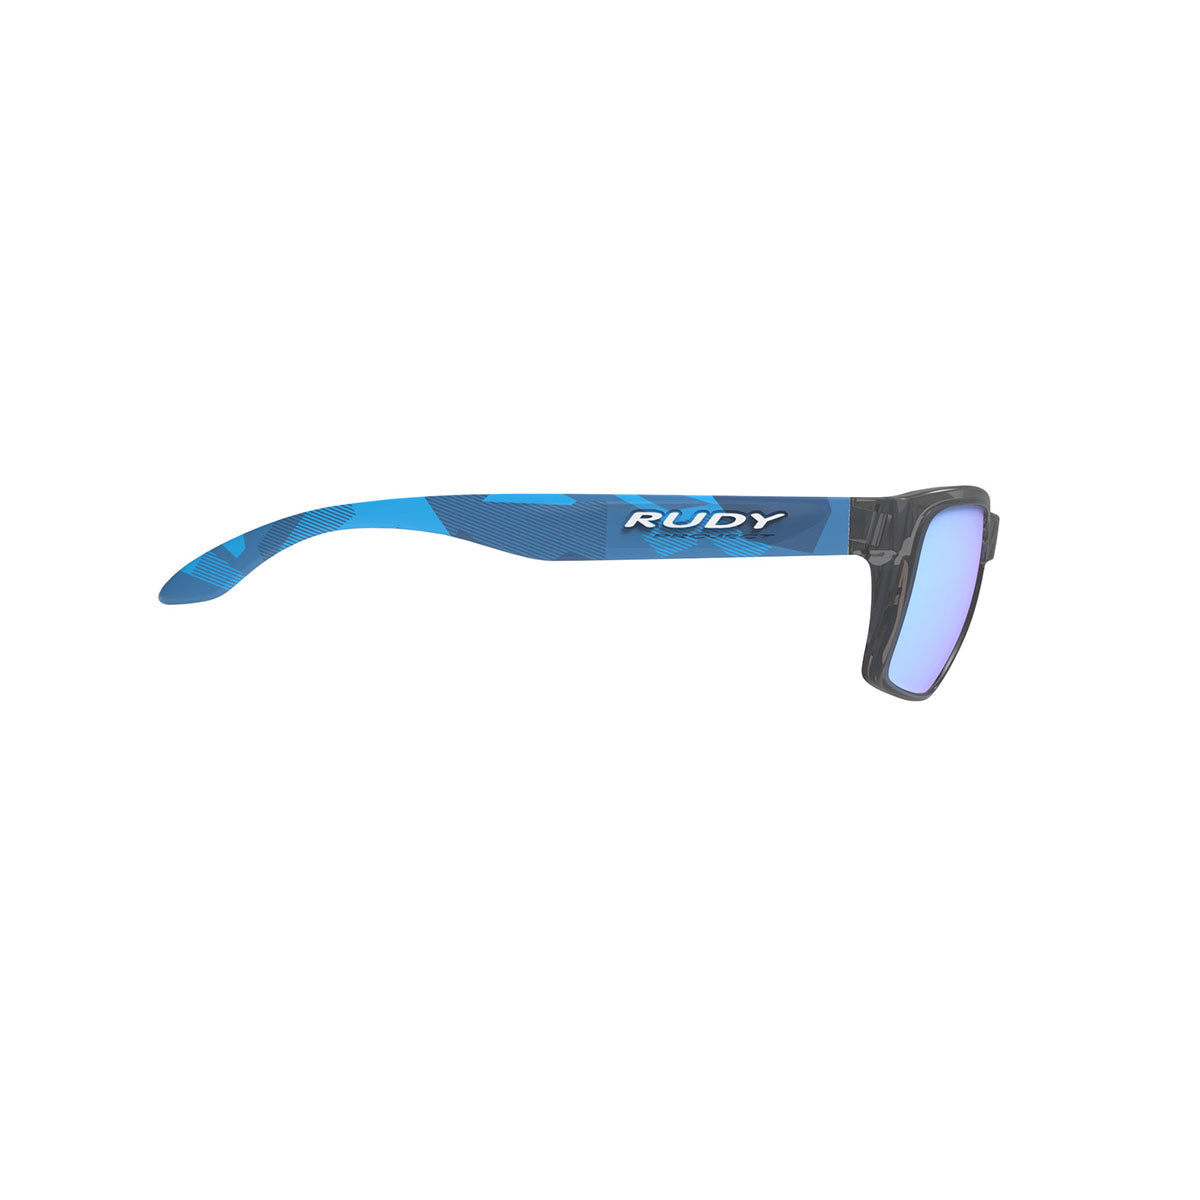 Rudy Project - Spinhawk Slim - frame color: Neo Camo Crystal Blue - lens color: Multilaser Ice - Bumper Color:  - photo angle: Side Variant Hover Image